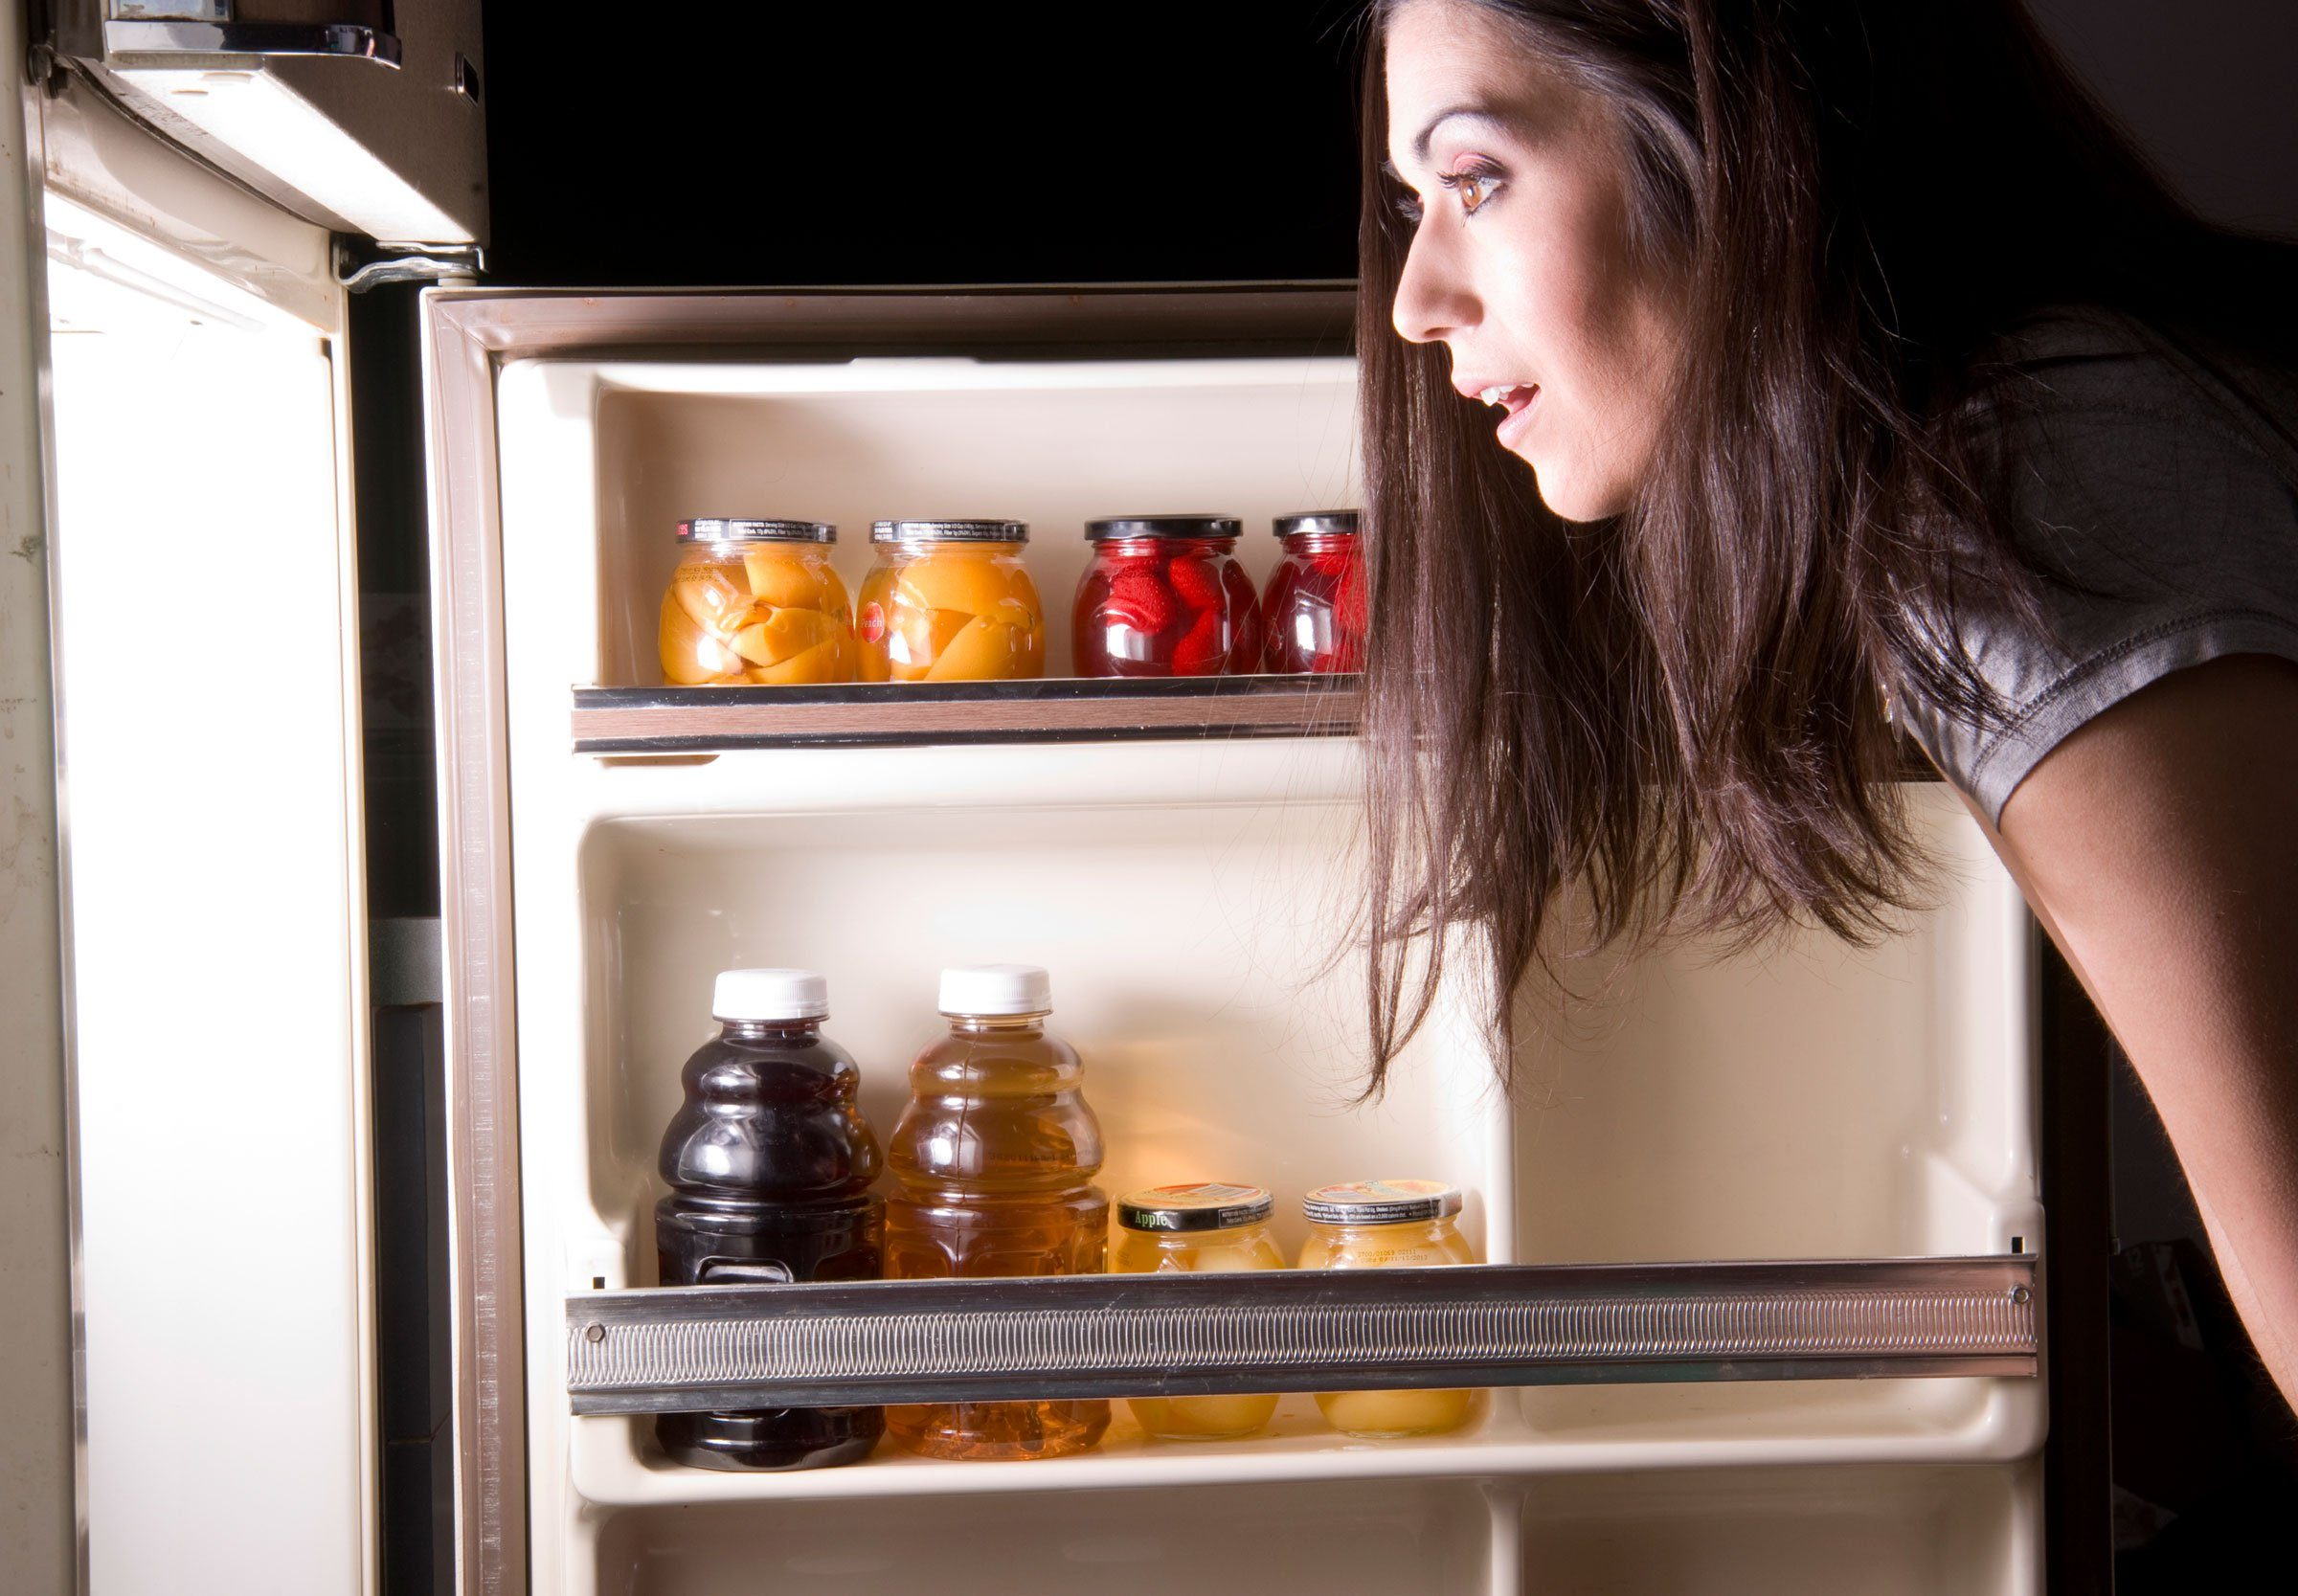 maintain a healthy weight | woman looking into a refrigerator